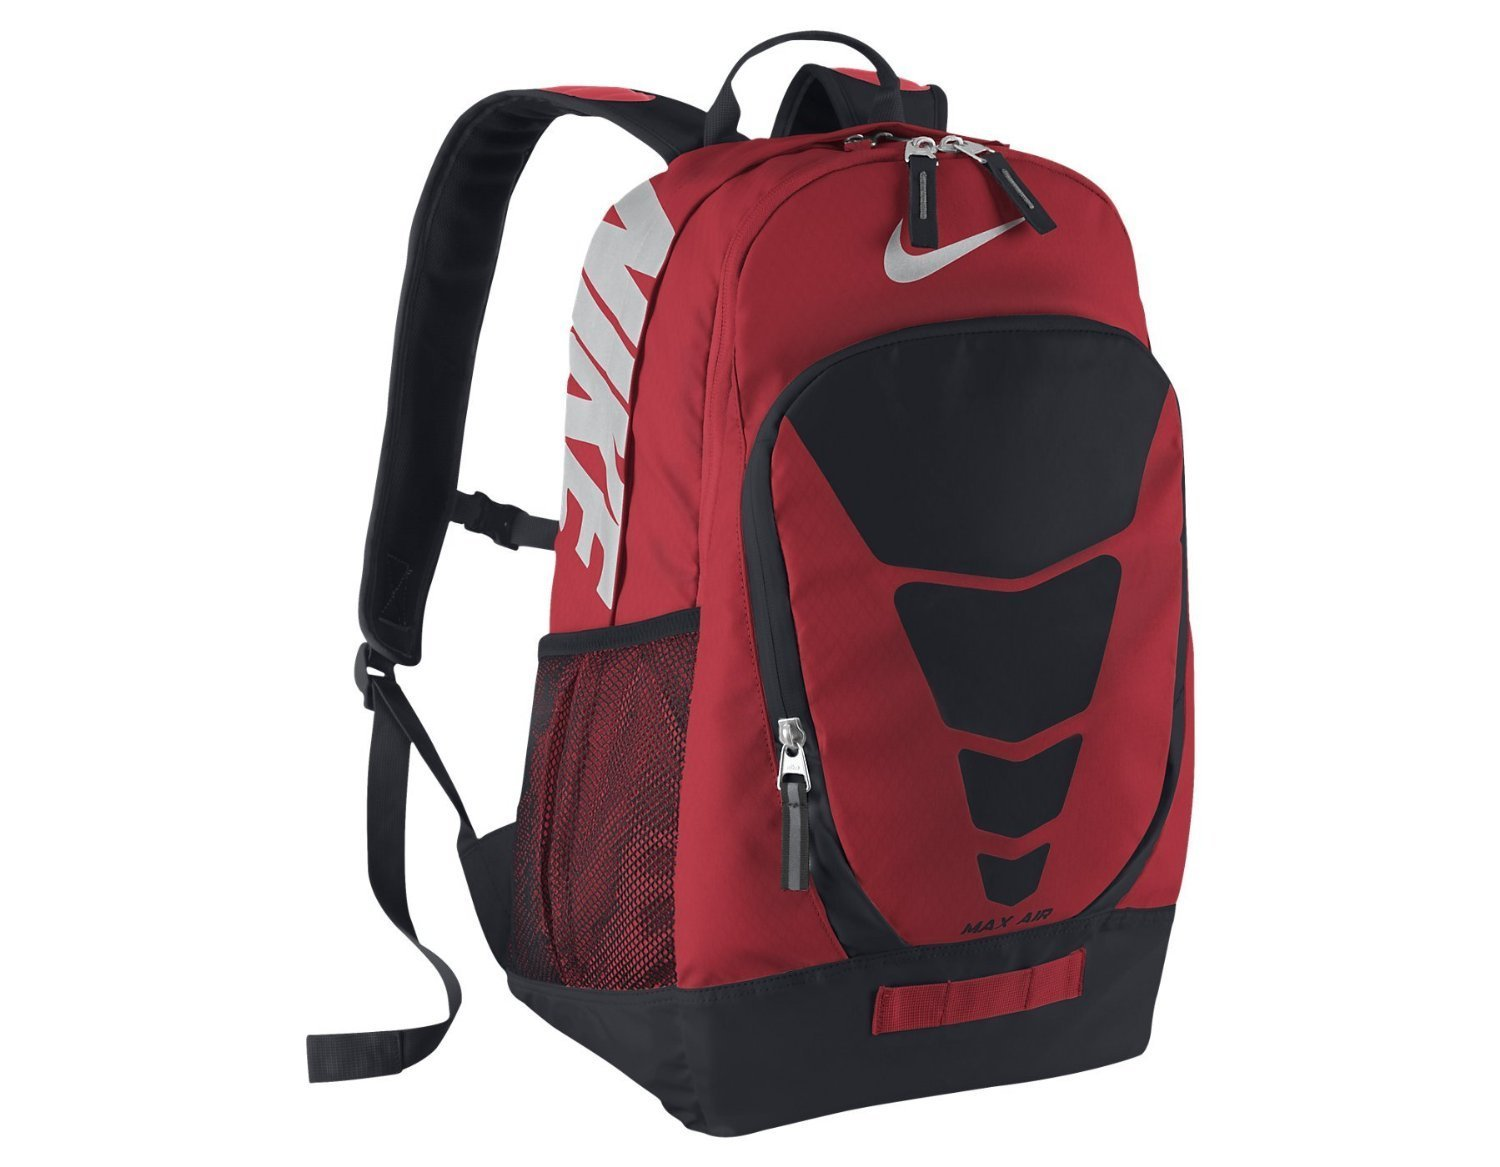 c0923a069 Buy Nike Vapor BP Large Backpack Daring Red/Black/Metallic Silver in ...